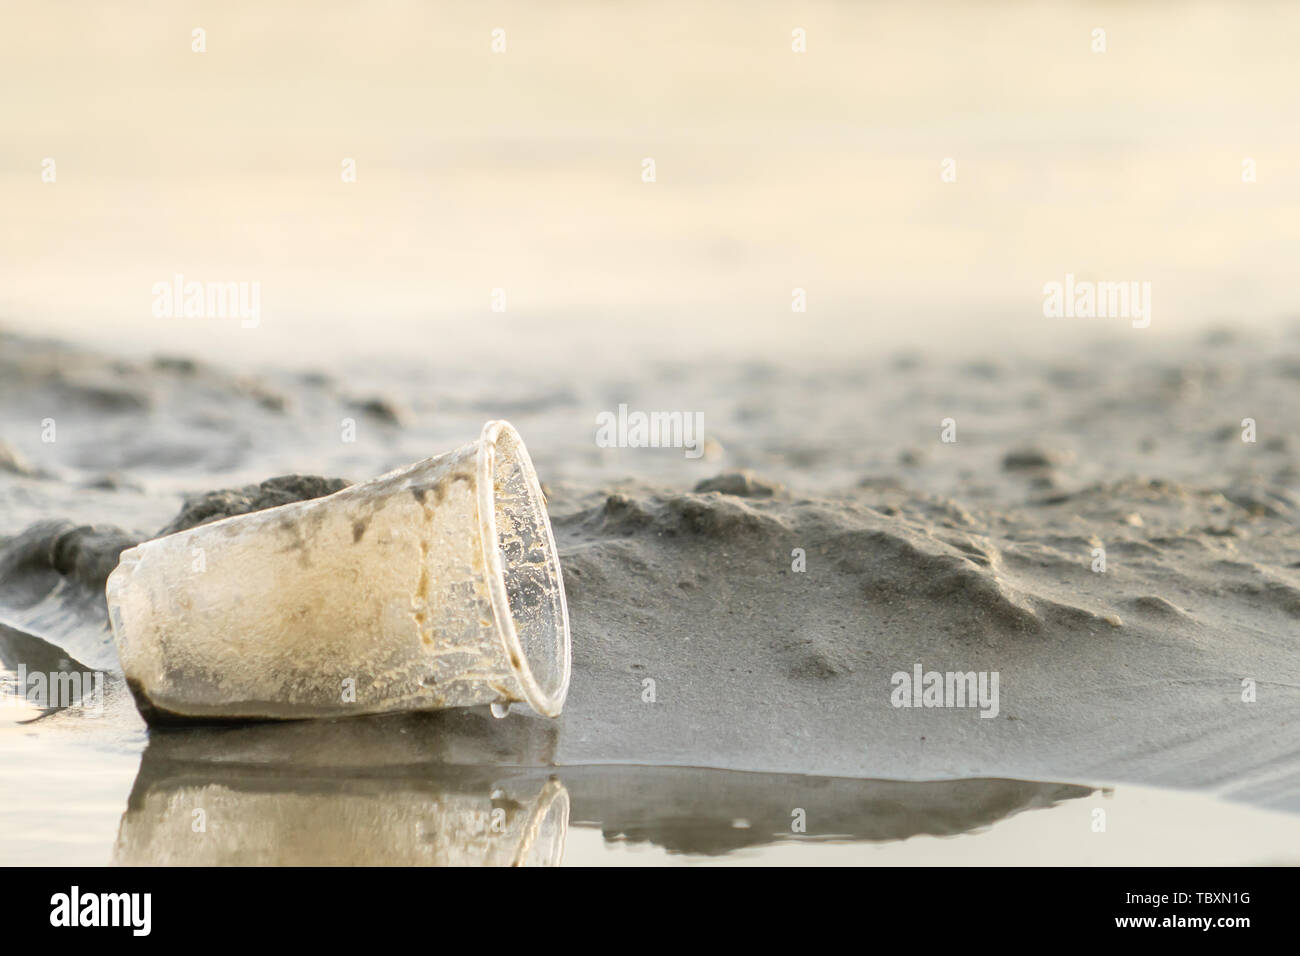 Rubbish Plastic cup left on the beach make pollution - Stock Image